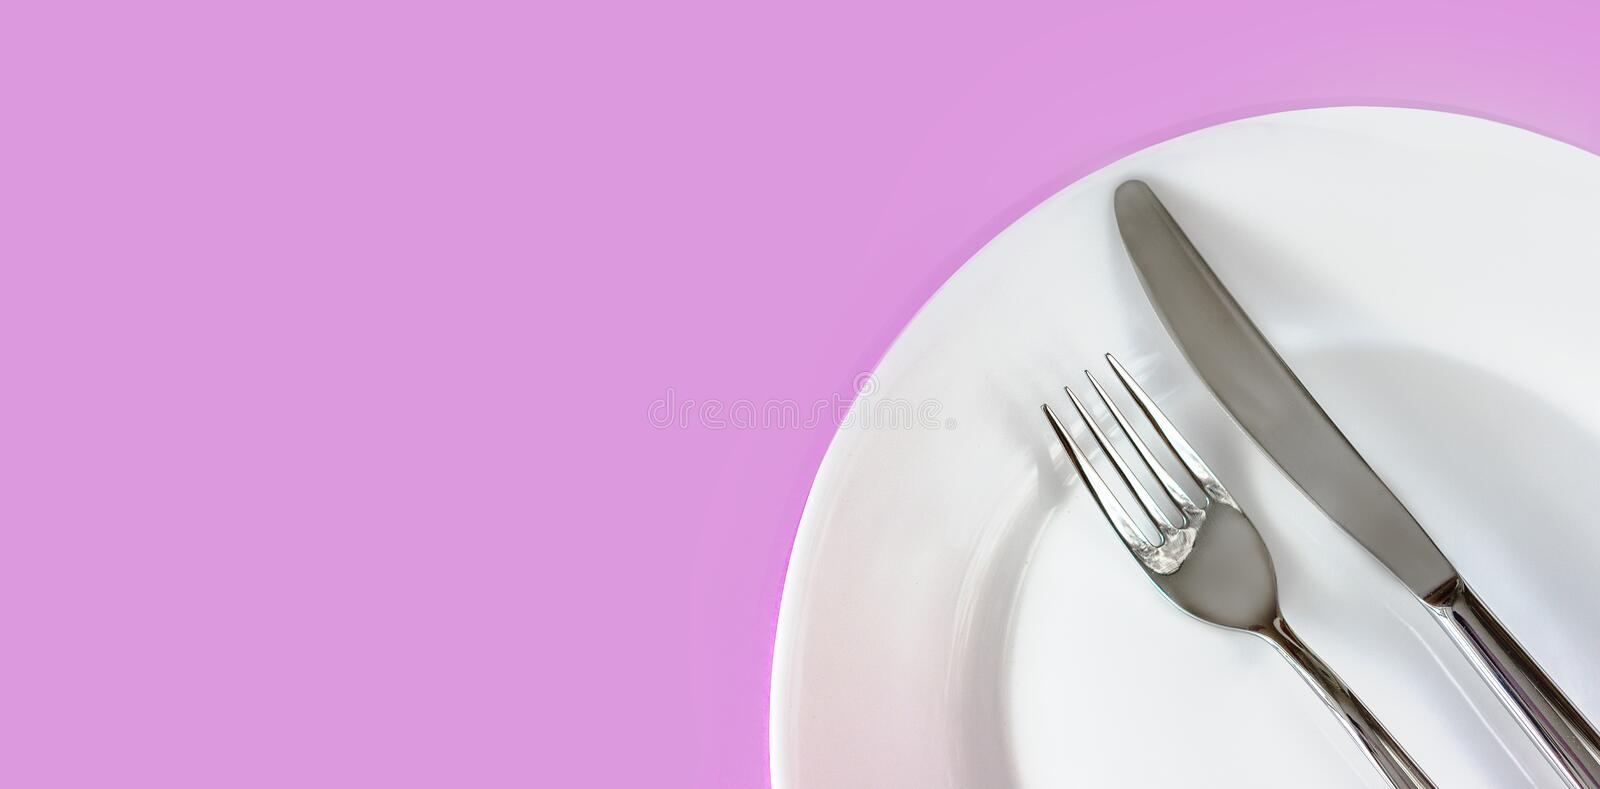 Clean white plate and stainless knife and fork  on light purple background. Served cutlery. Time to eat. Top view. Copy space stock images